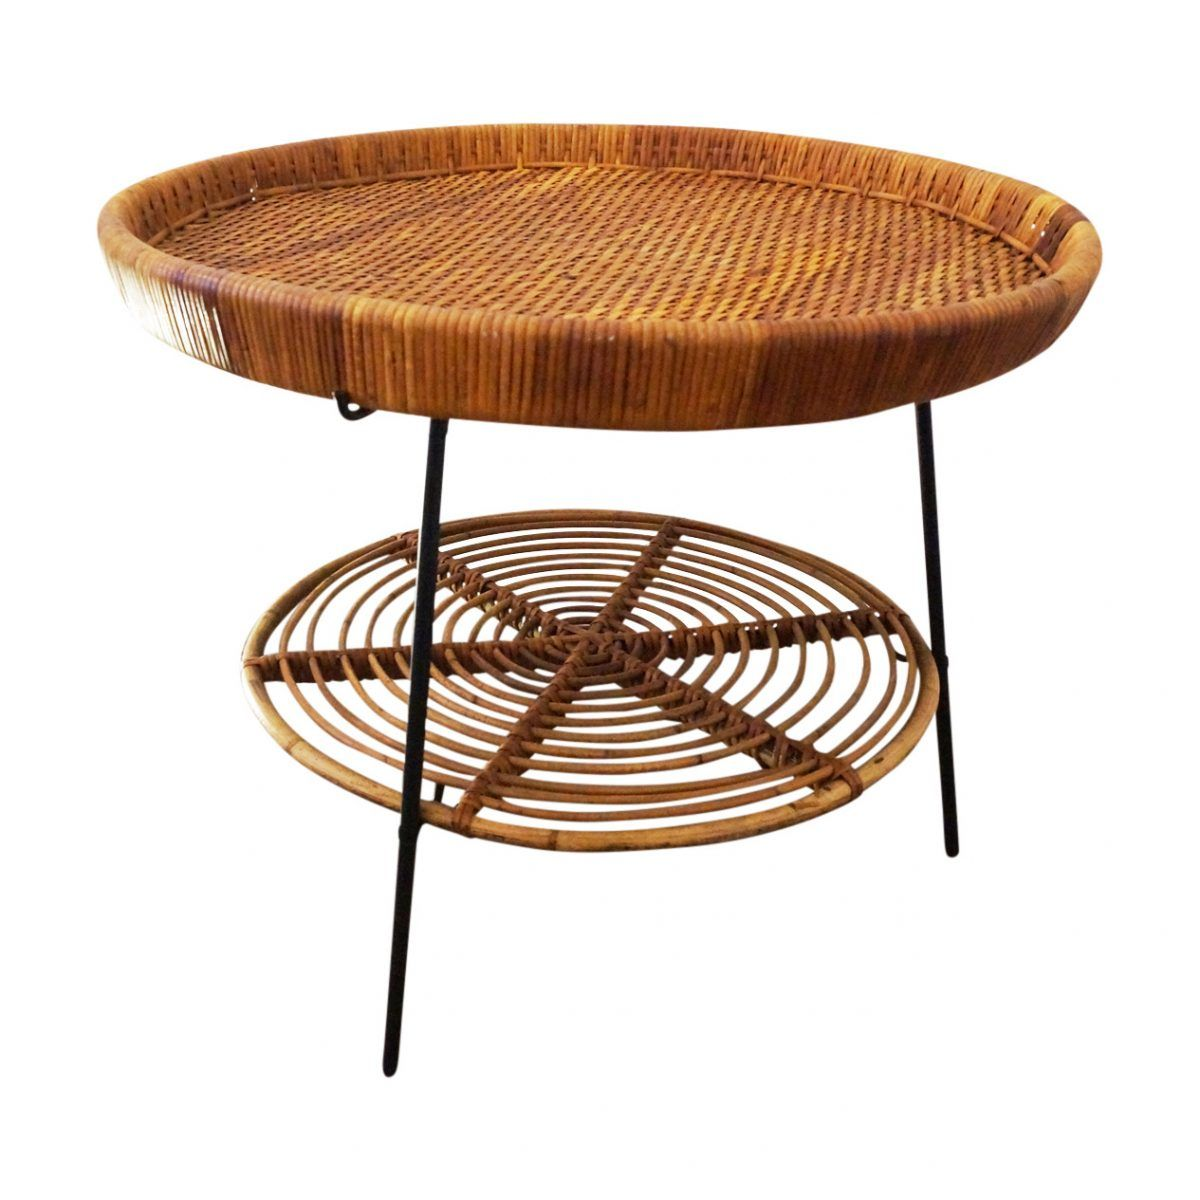 Lovely And Quirky Mid Century Circular Italian Two Tier Side Table In Bamboo Woven Rattan And Black Metal Retro Furniture Furniture Table